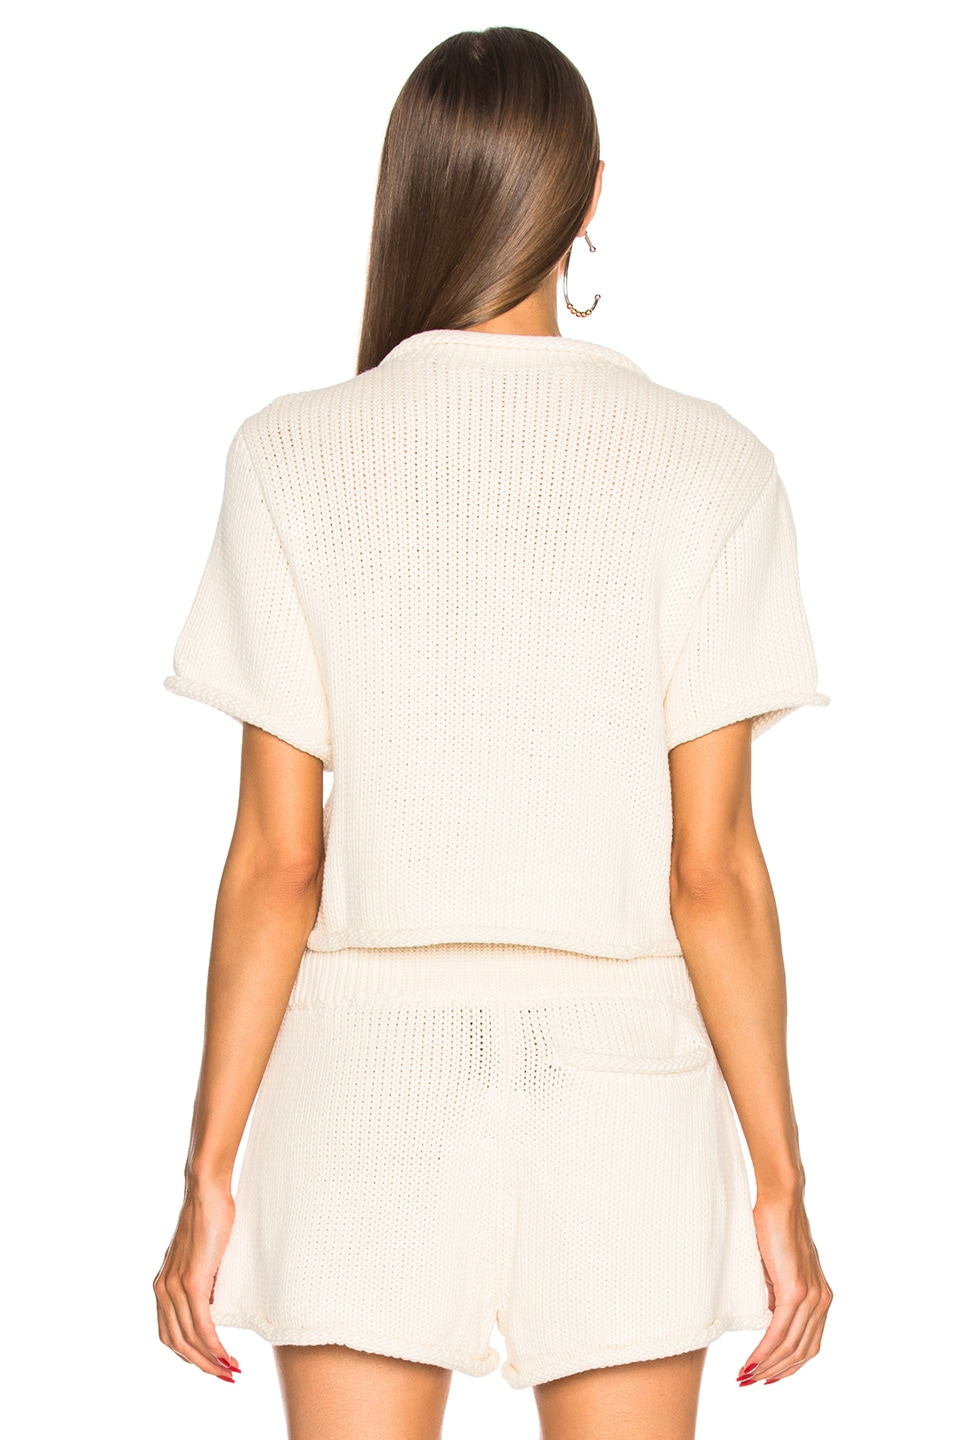 T by Alexander Wang Cropped Short Sleeve Sweater in Ivory | FWRD